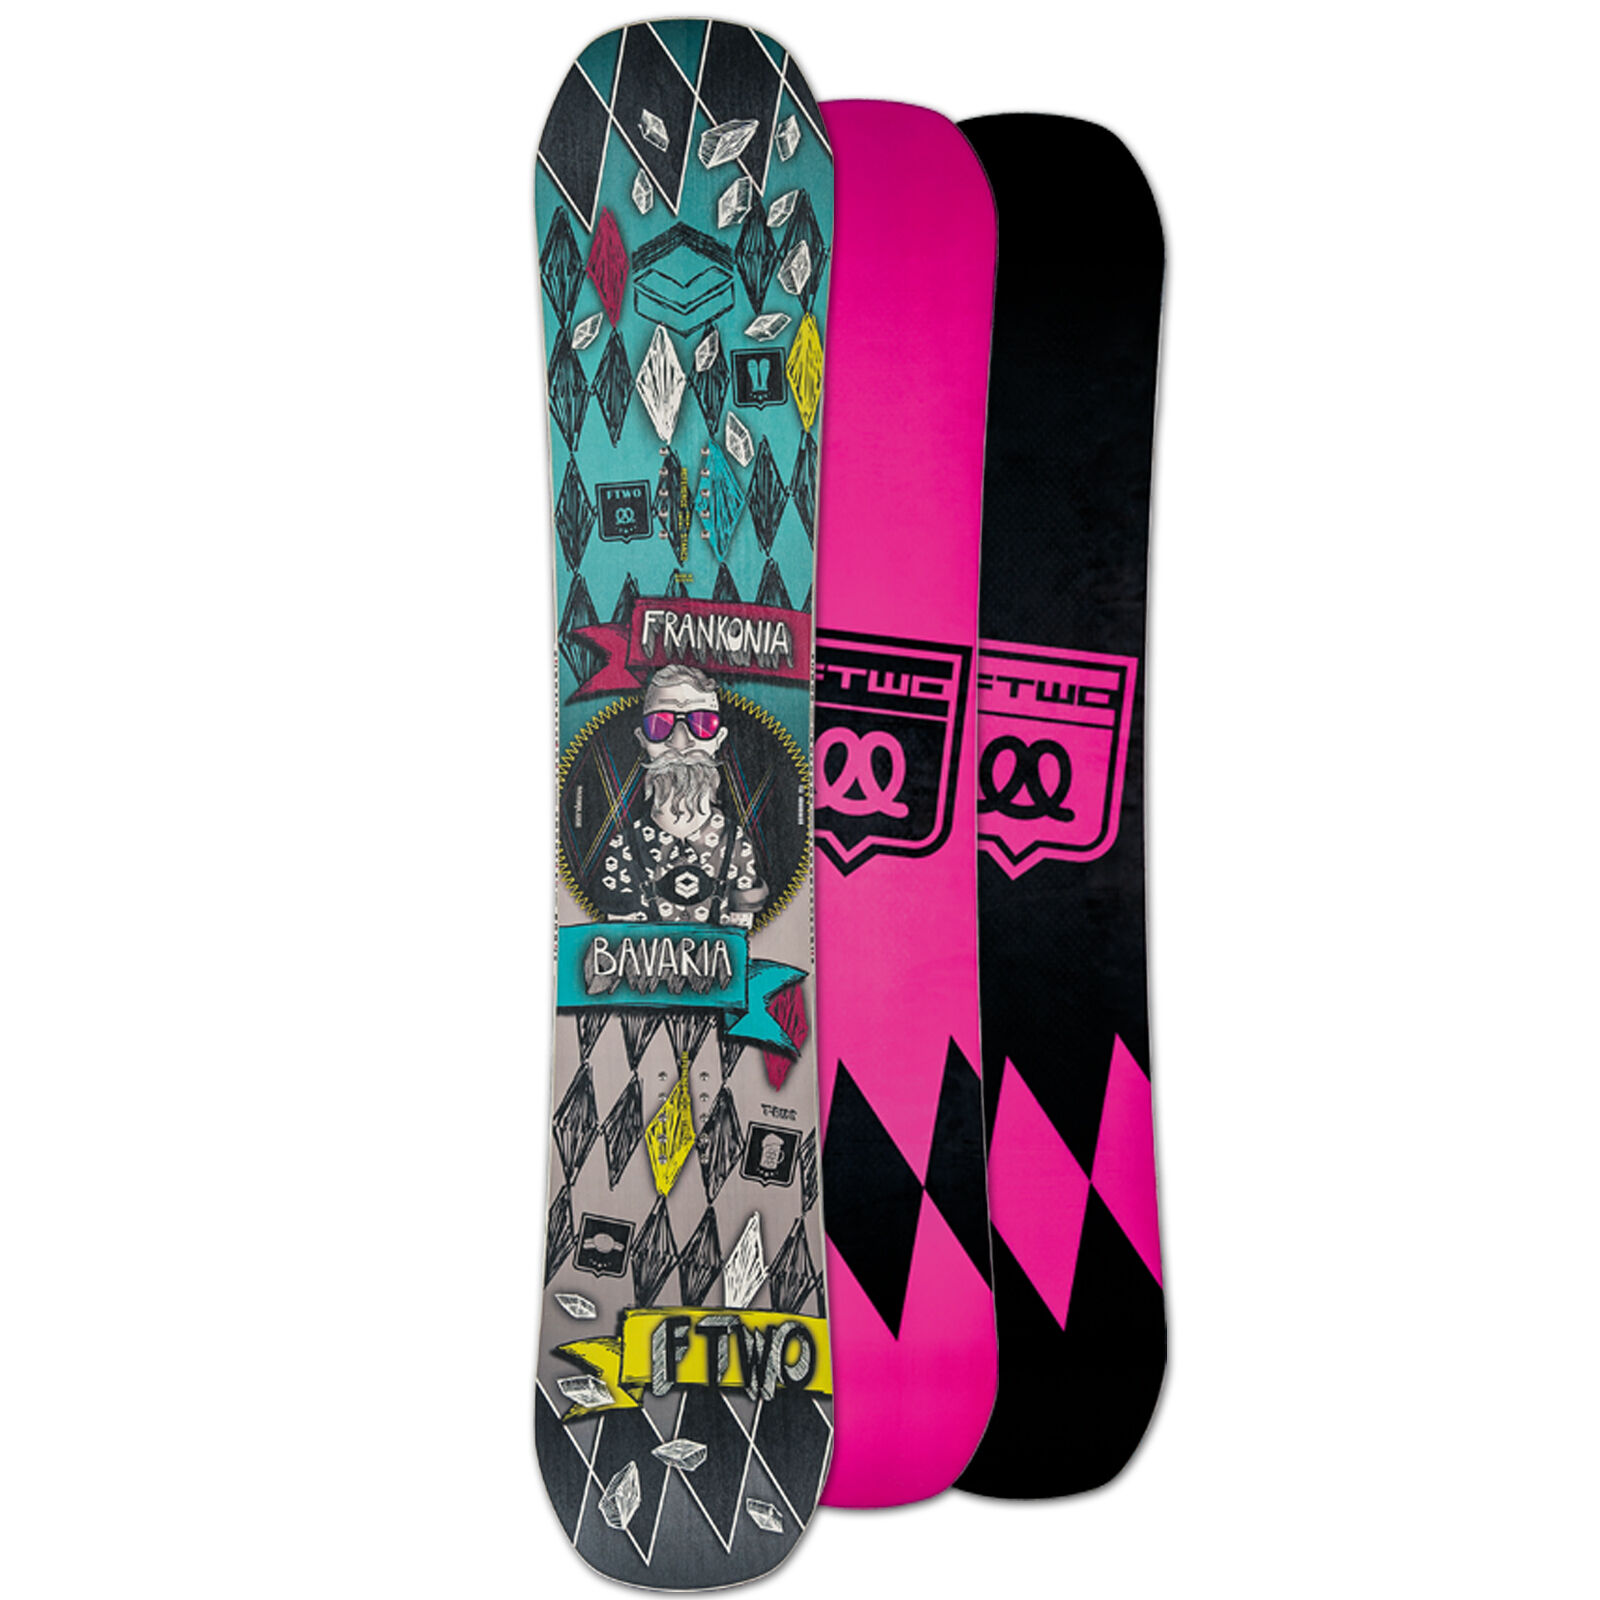 Ftwo Men's Freestyle Snowboard T-Ride One  148 cm Camber